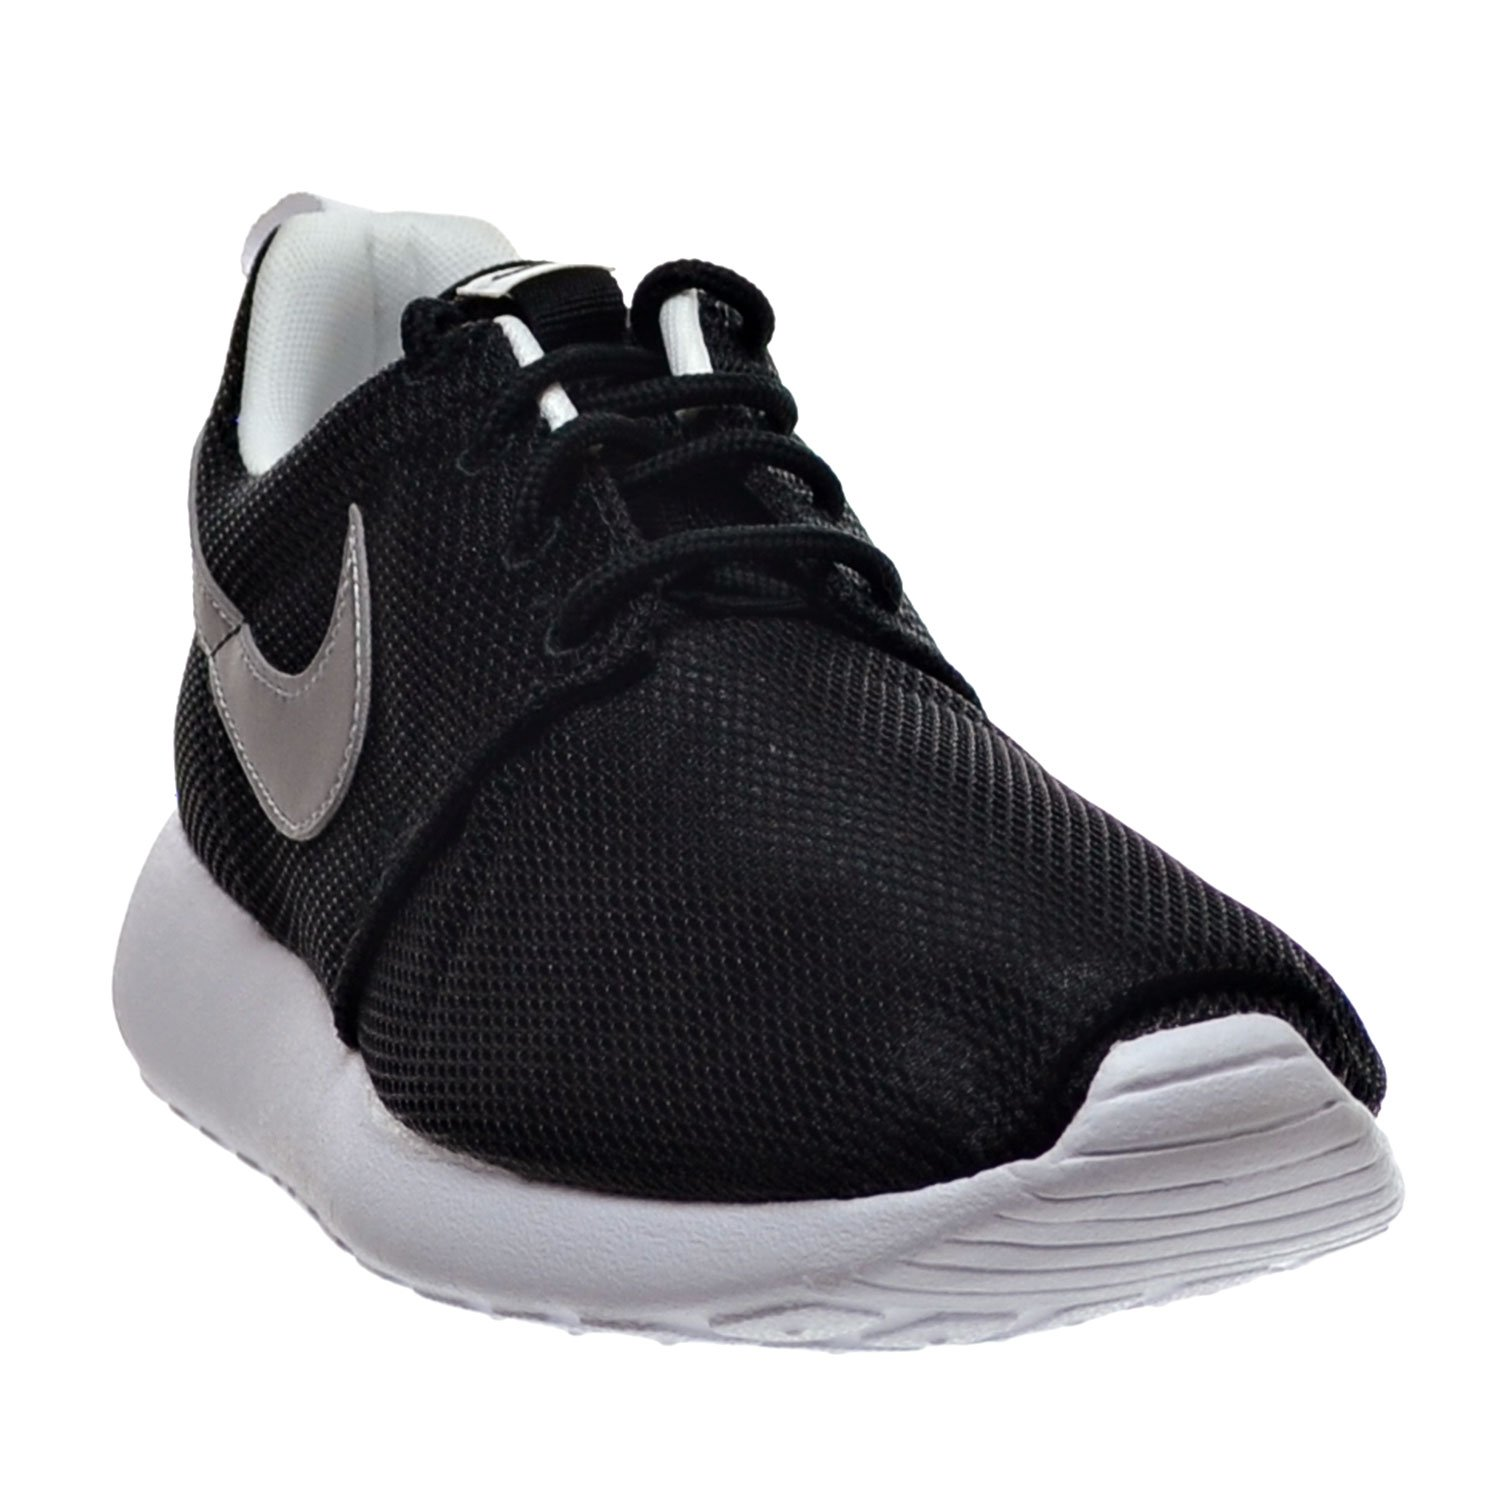 9ba722b5b4 Amazon.com | Nike Air Roshe One (GS) Big Kid's Shoes Black/Metallic Silver/White  599728-021 (6 M US) | Running